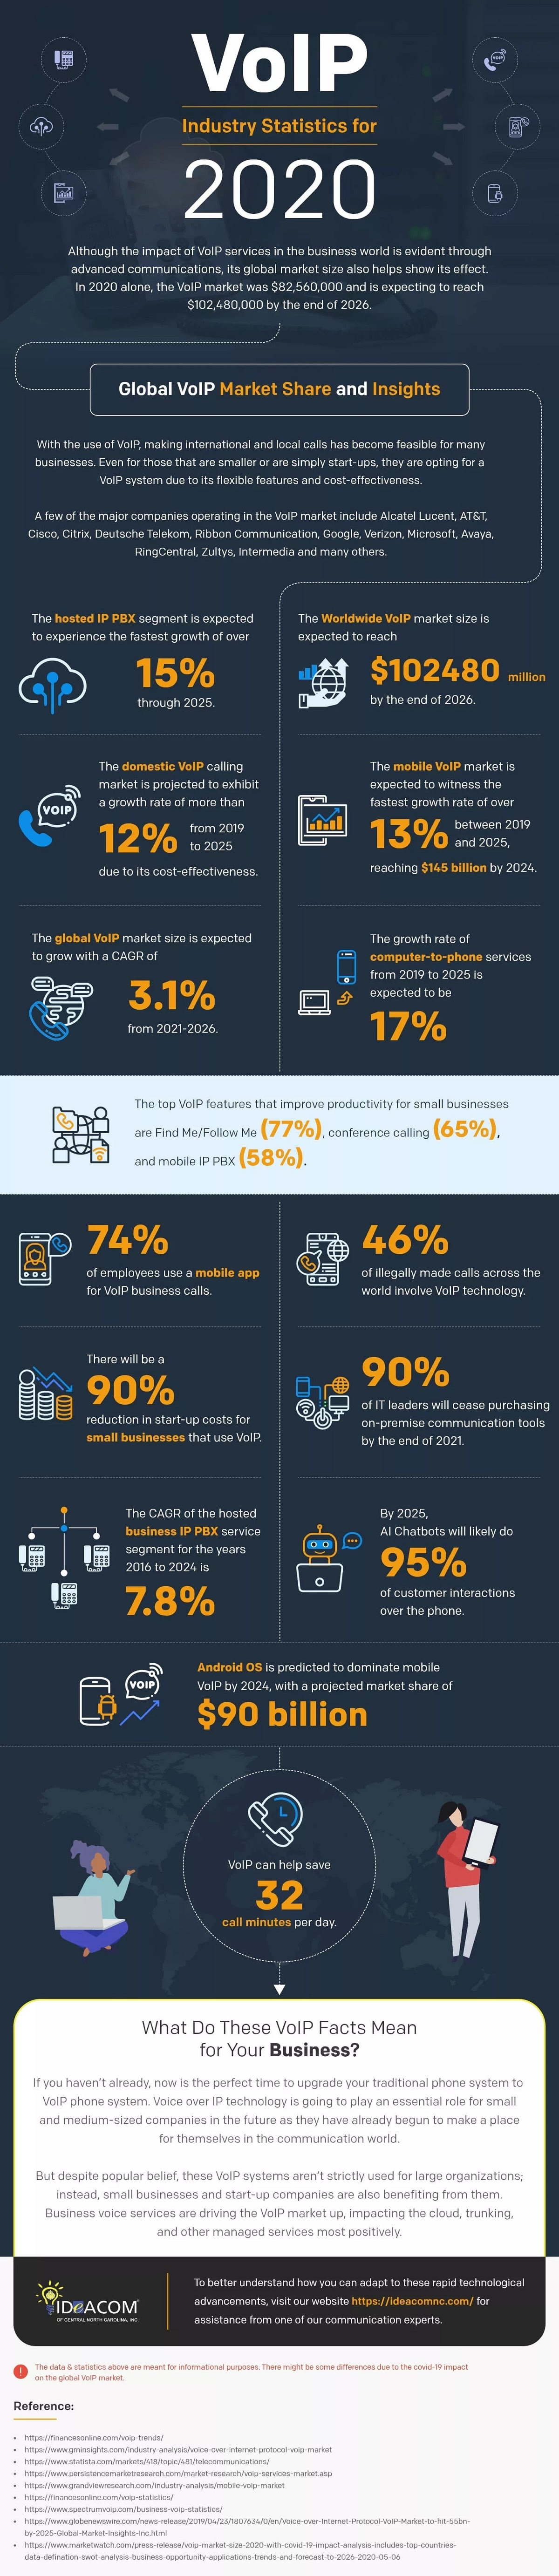 voip-industry-statistics-2020-infographic